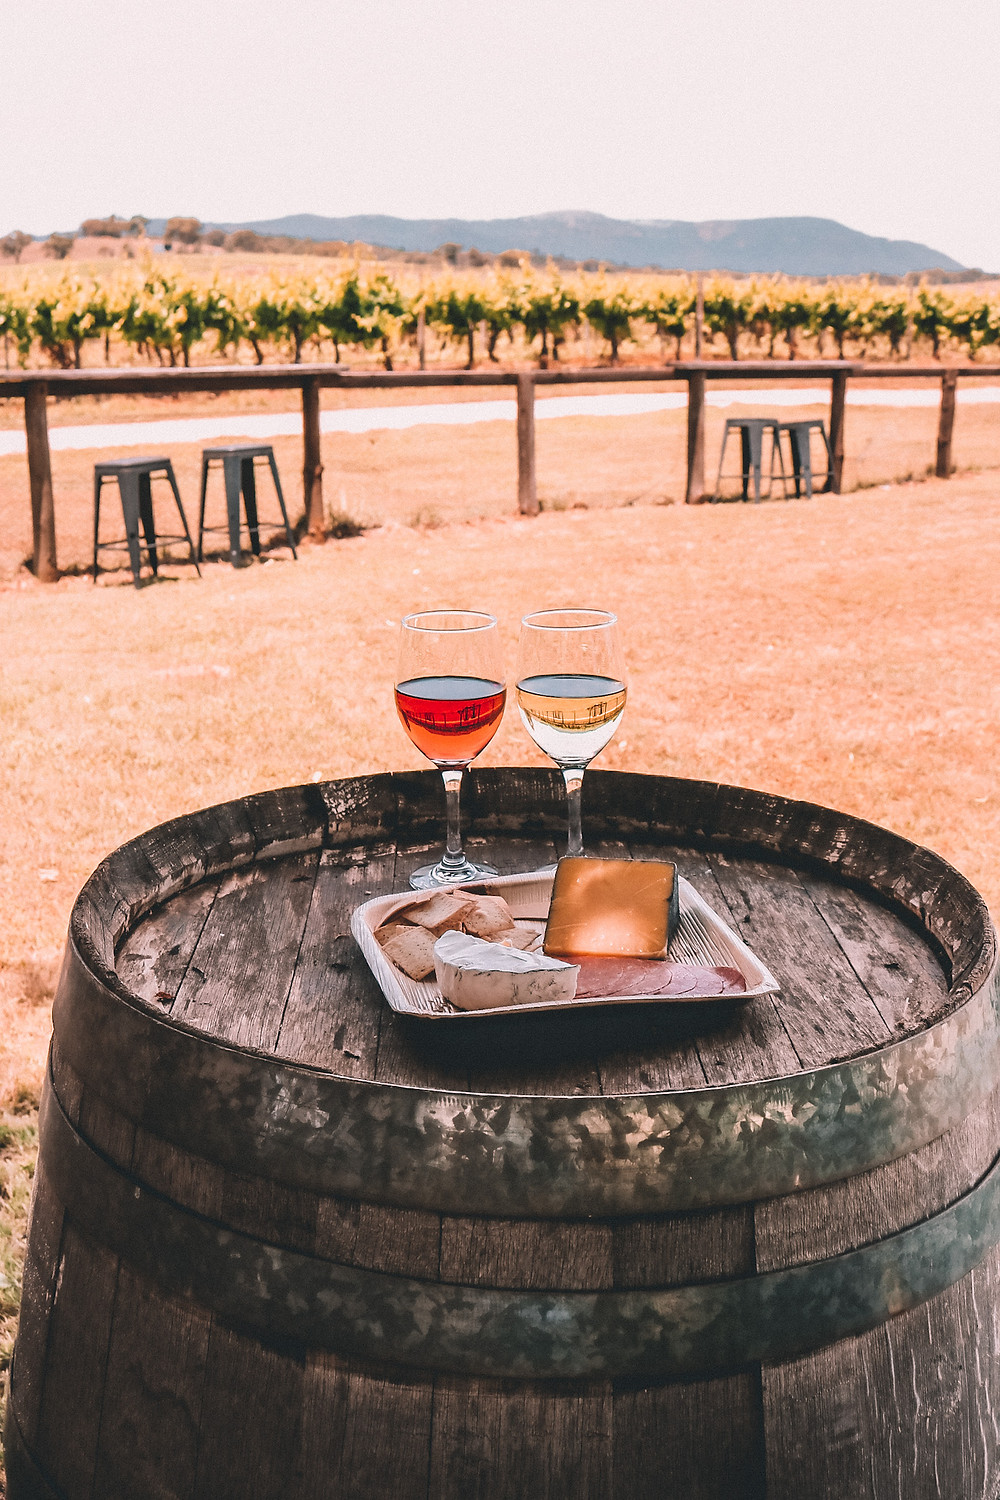 Wine and cheese plate on a wine barrel